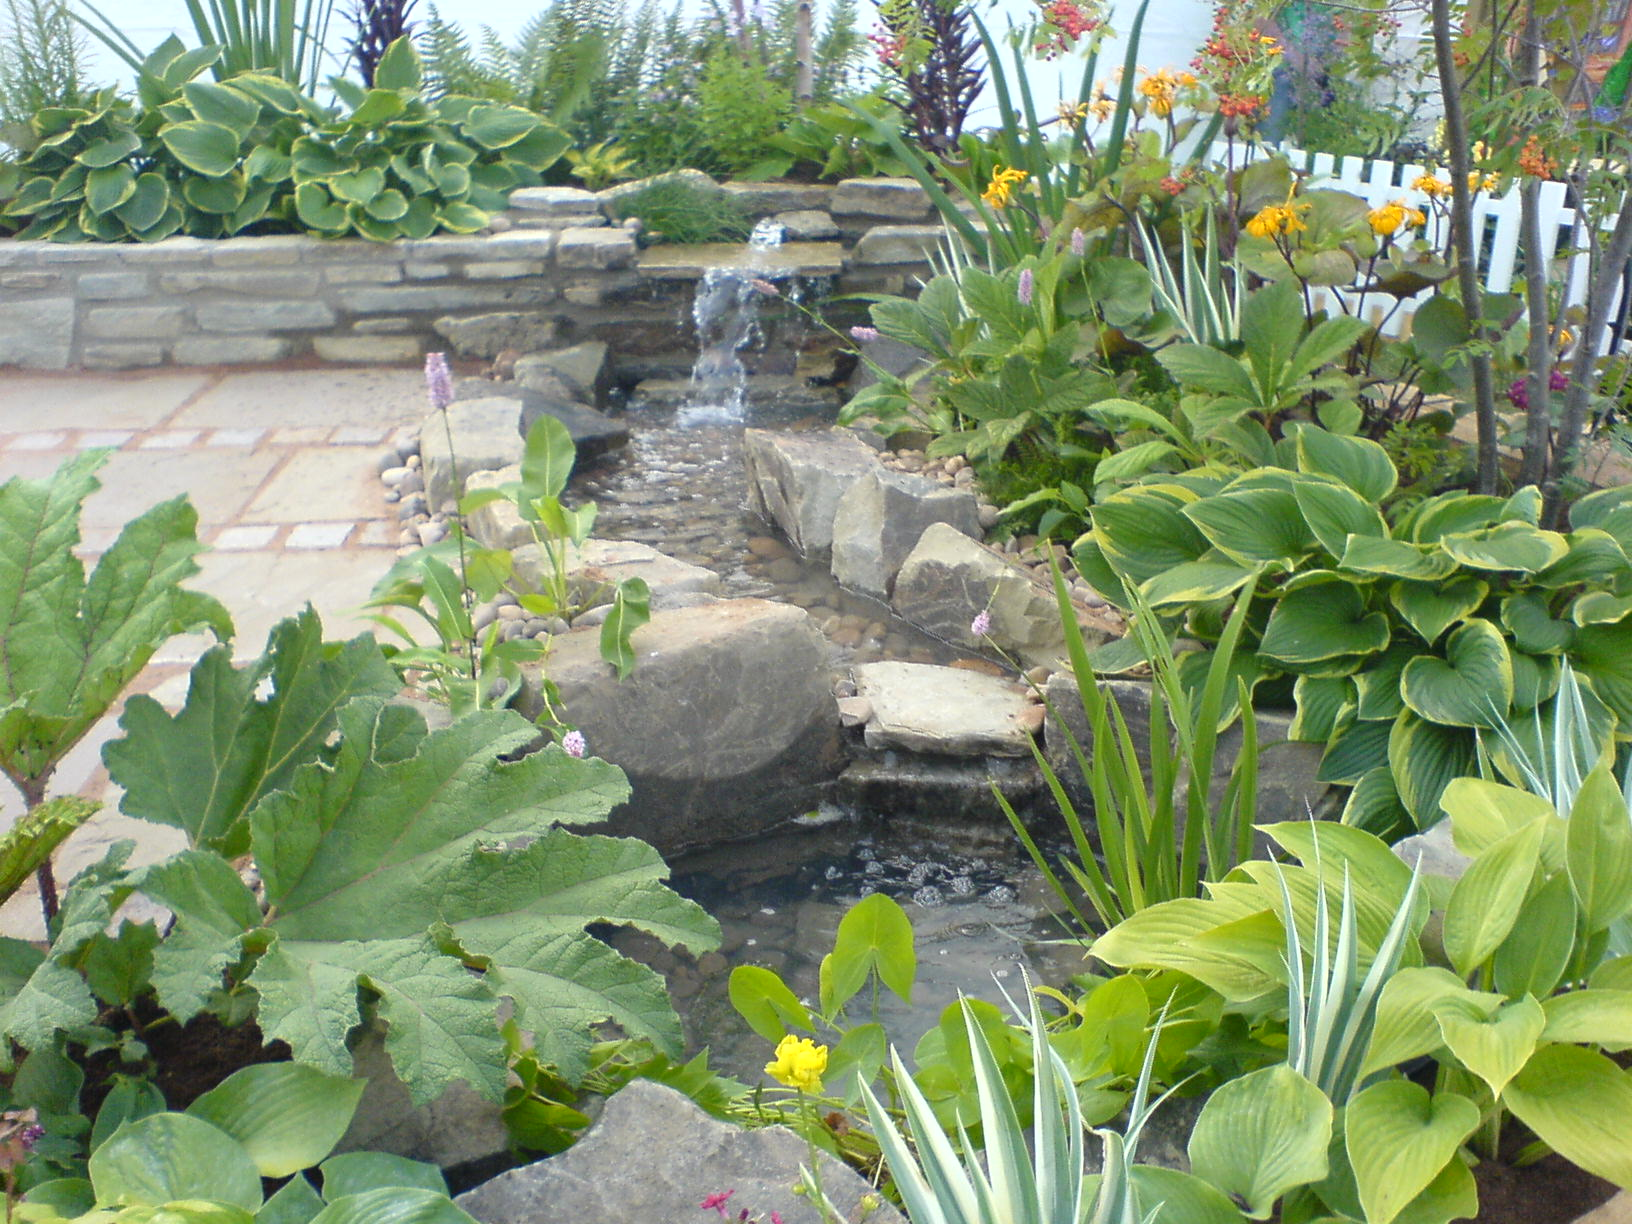 Garden Design With Garden Design Services Ornamental Stonework And Water  Features With Backyard Patio Ideas From